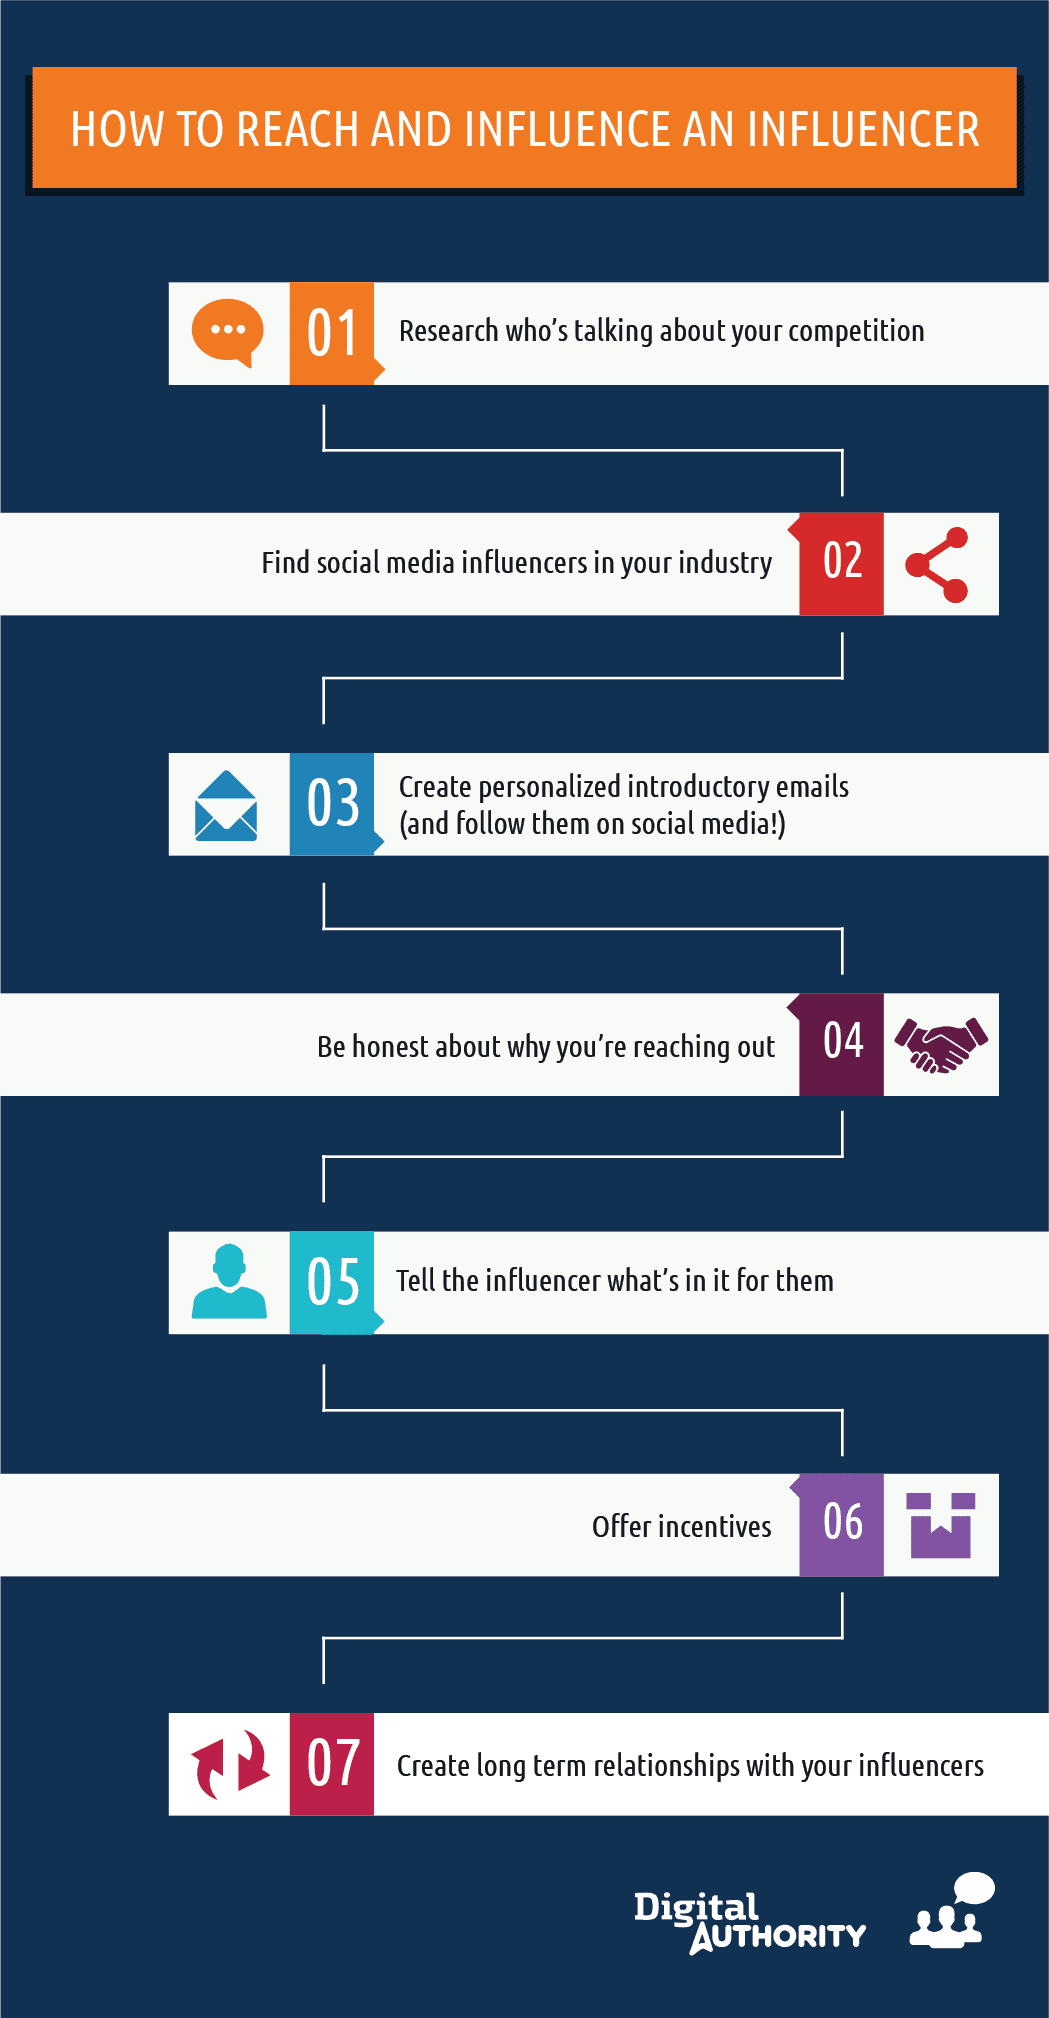 Want to make sure you post new content on a consistent basis? Invite influencers to guest post on your blog. You'll get fresh content and a wider audience. For more tips on how to reach out to, and connect with Influencers for your business, check out this great infographic.